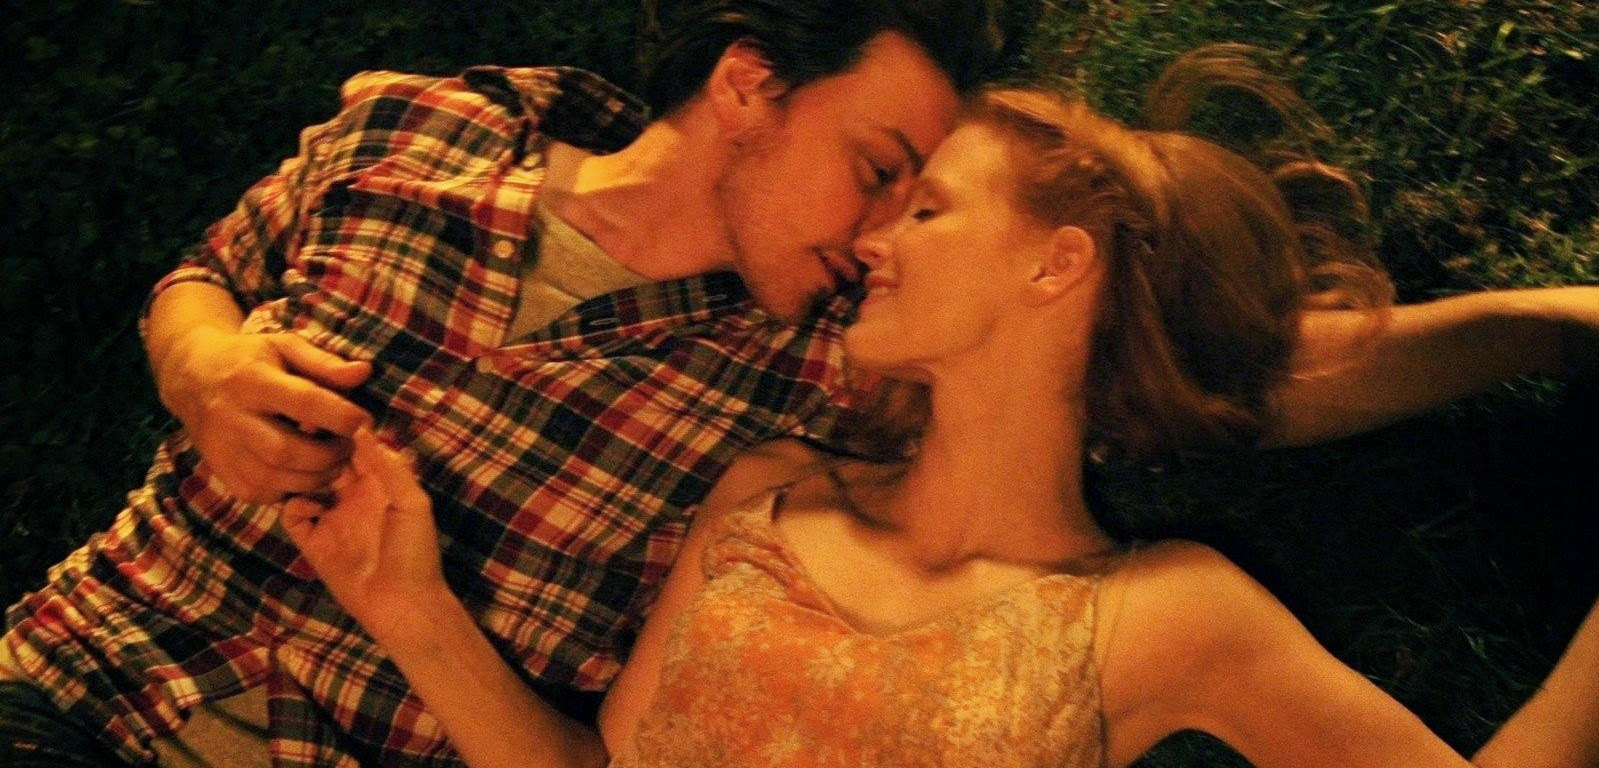 James McAvoy e Jessica Chastain no trailer do romance The Disappearance of Eleanor Rigby